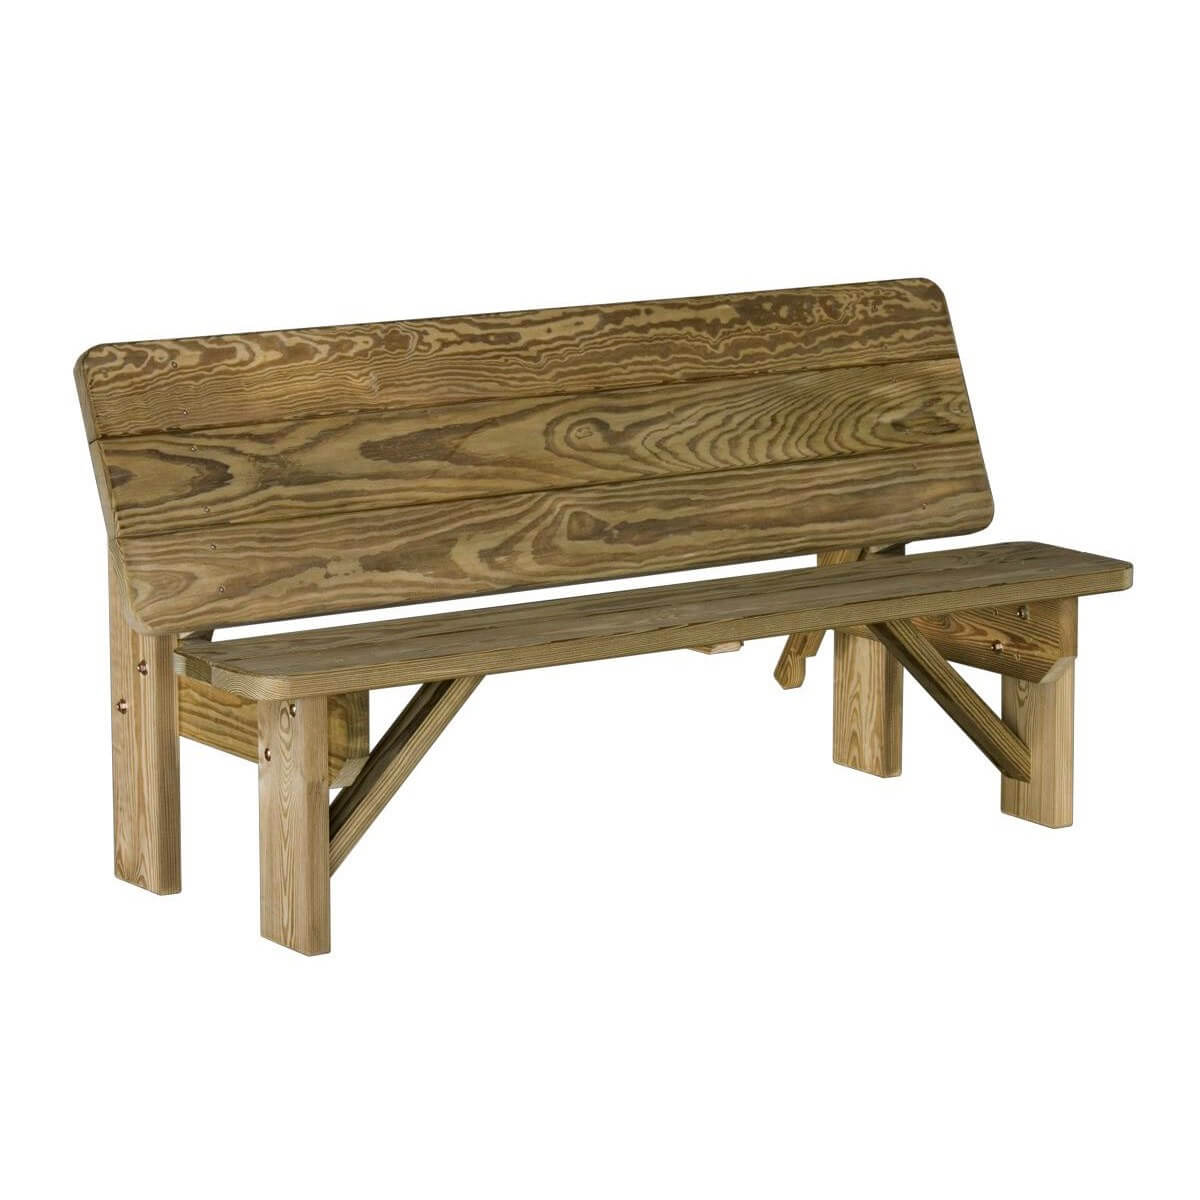 Wood Combo Chair: LuxCraft Wood Bench / Table Combo · Hostetler's Furniture